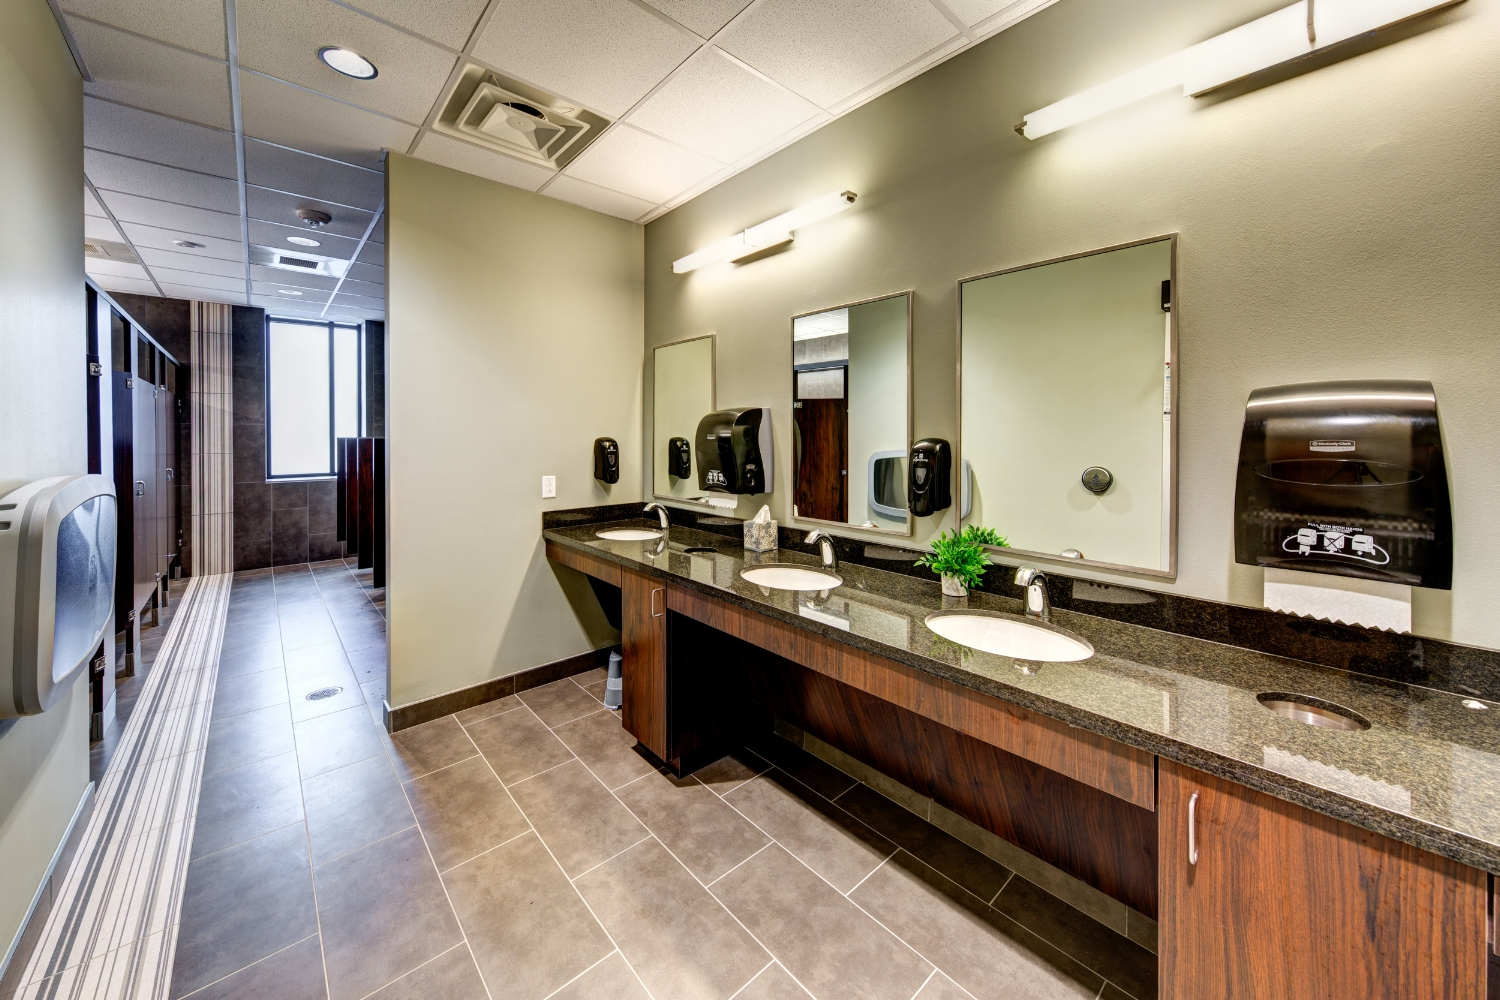 Men's Restroom   The most intimate of spaces should be equally as beautiful...